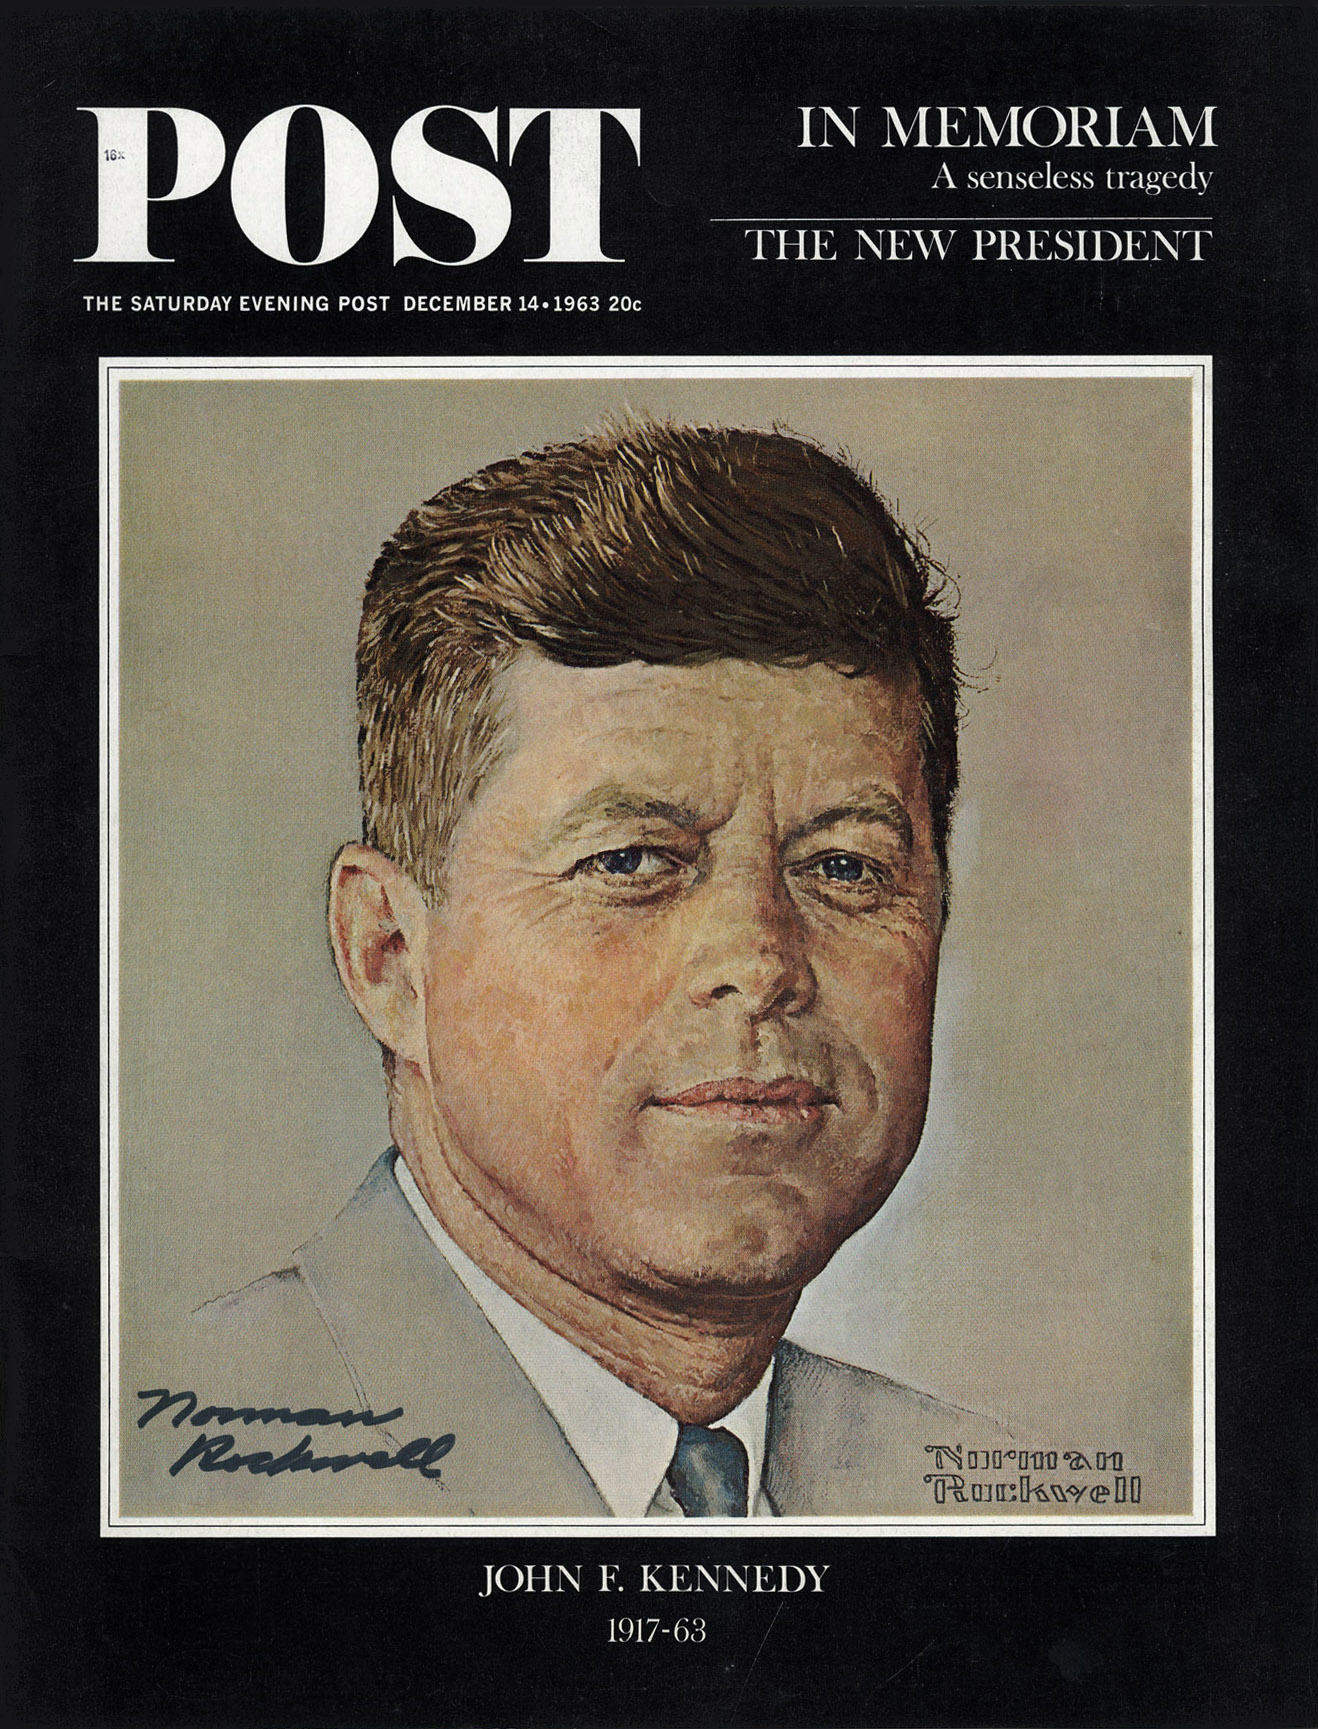 Normal Rockwell | KENNEDY | Dec 14, 1963